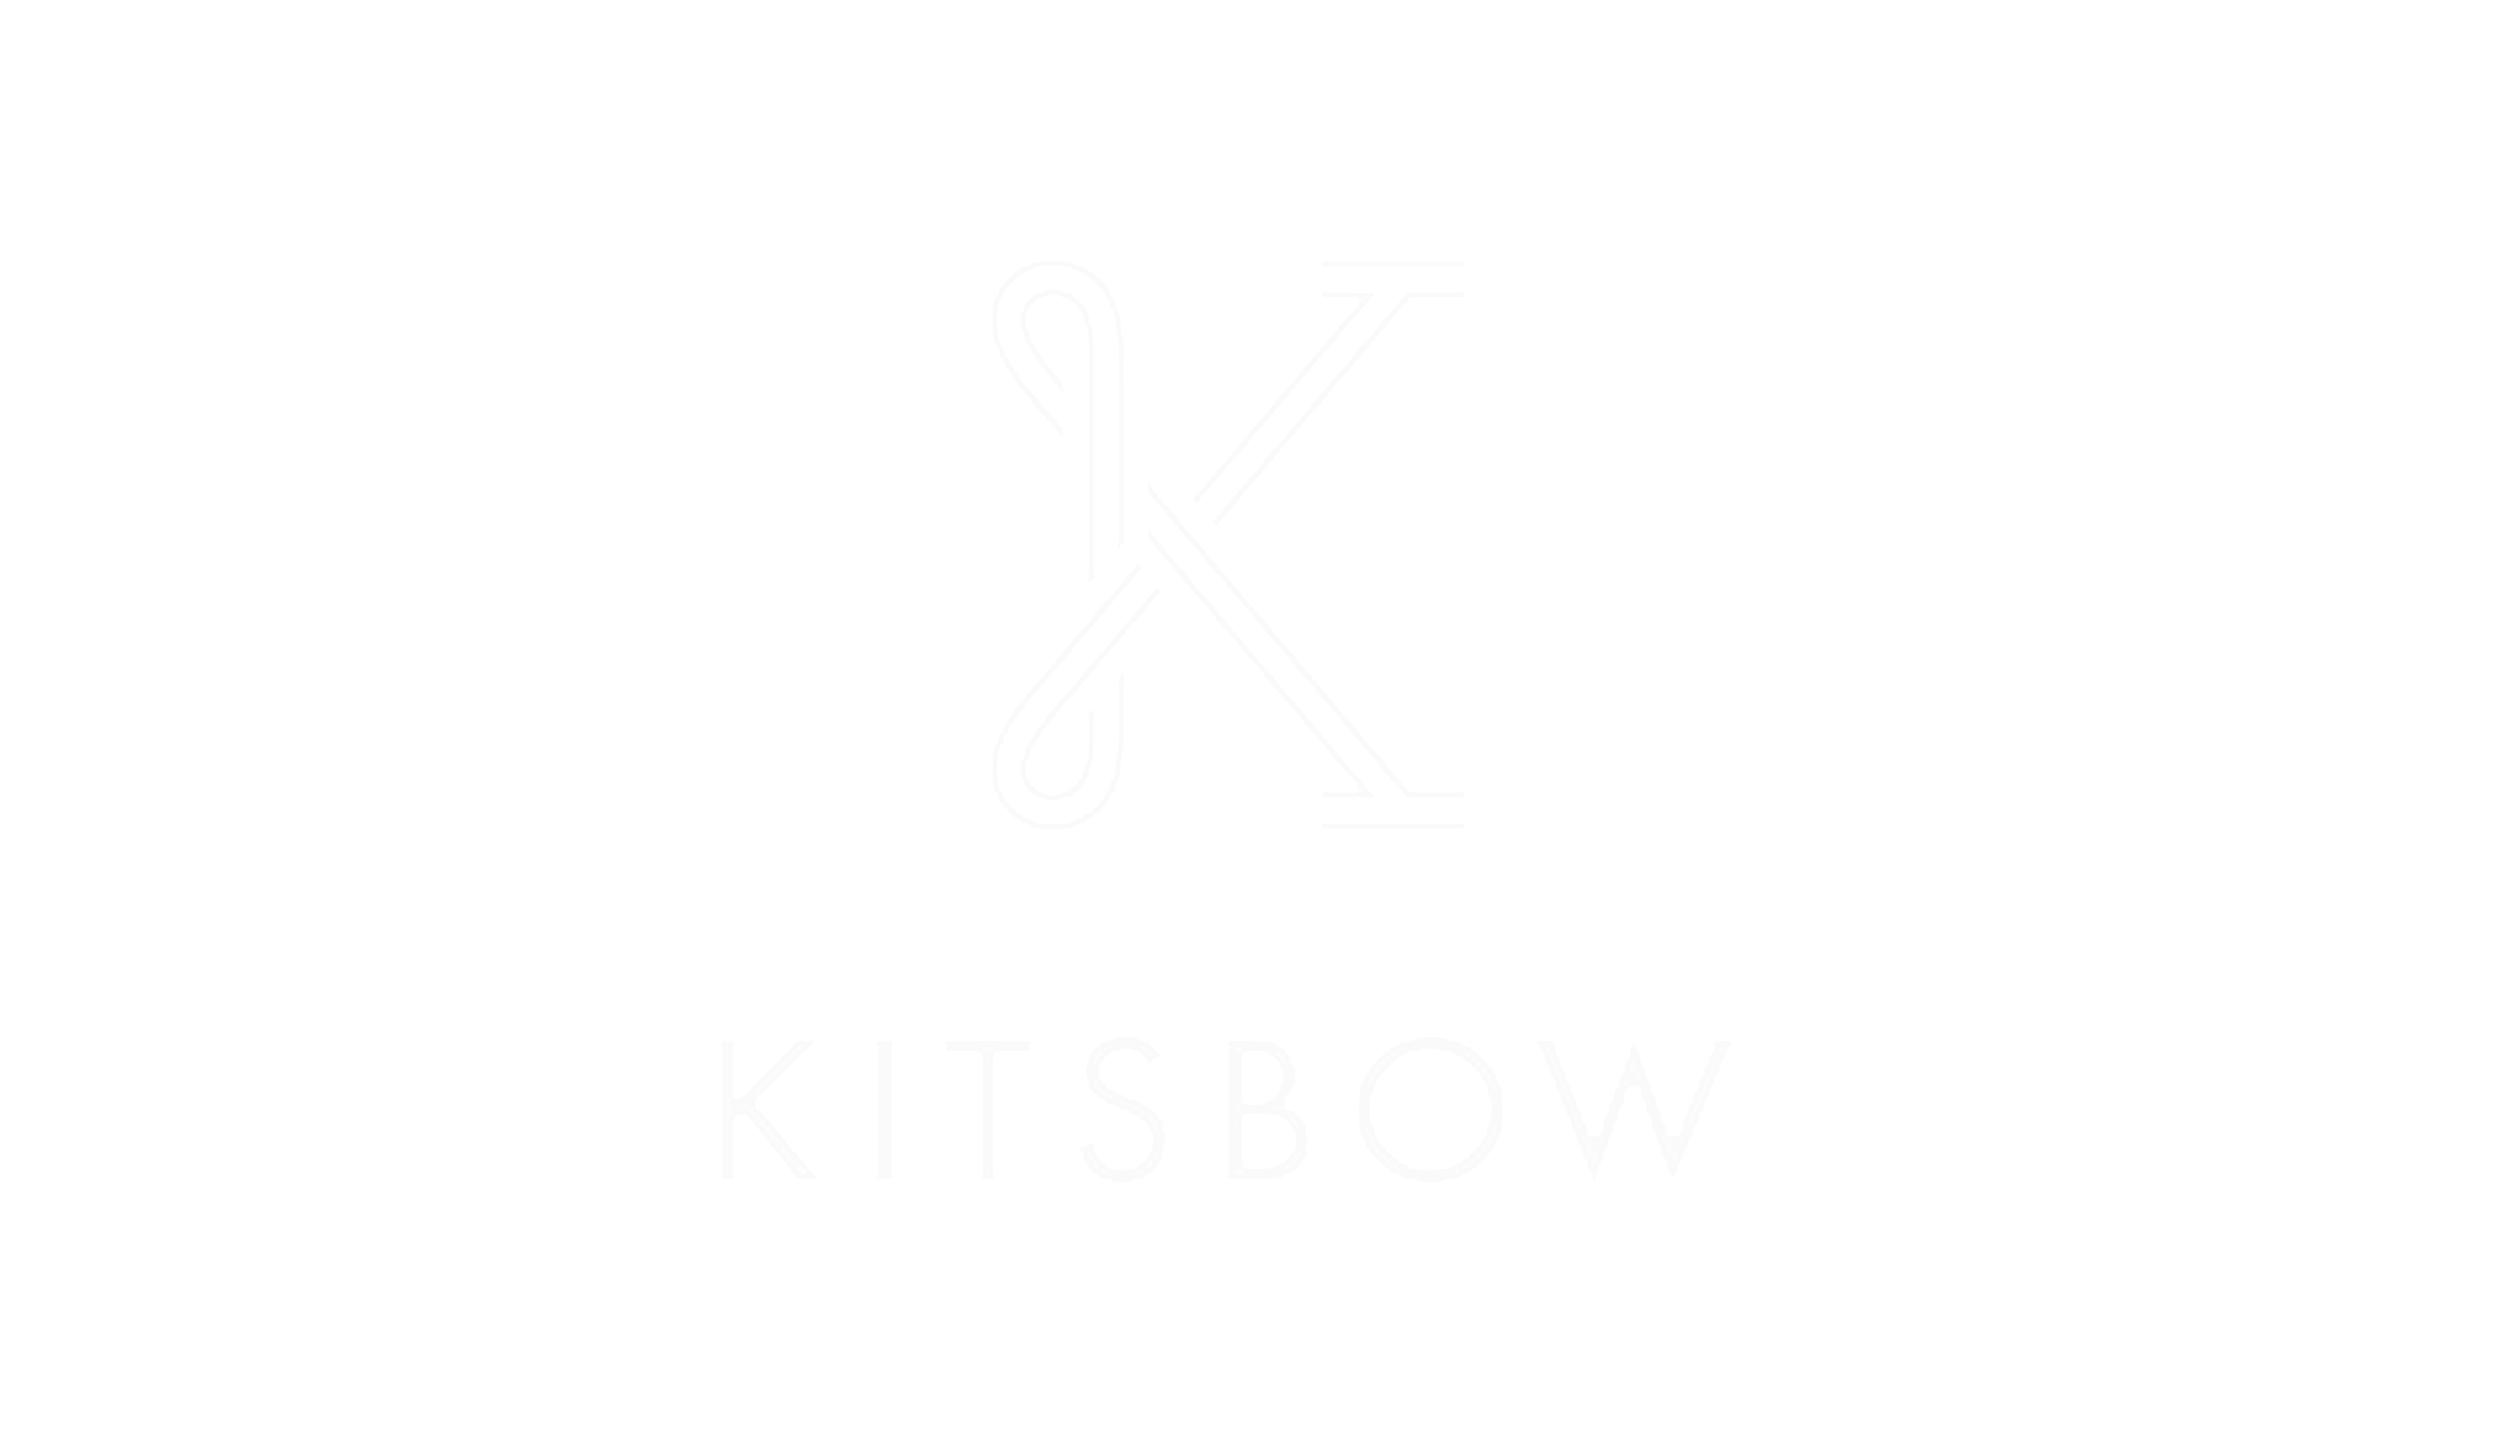 logos-Template_Bell_Lap_0000s_0013_Kitsbow.png